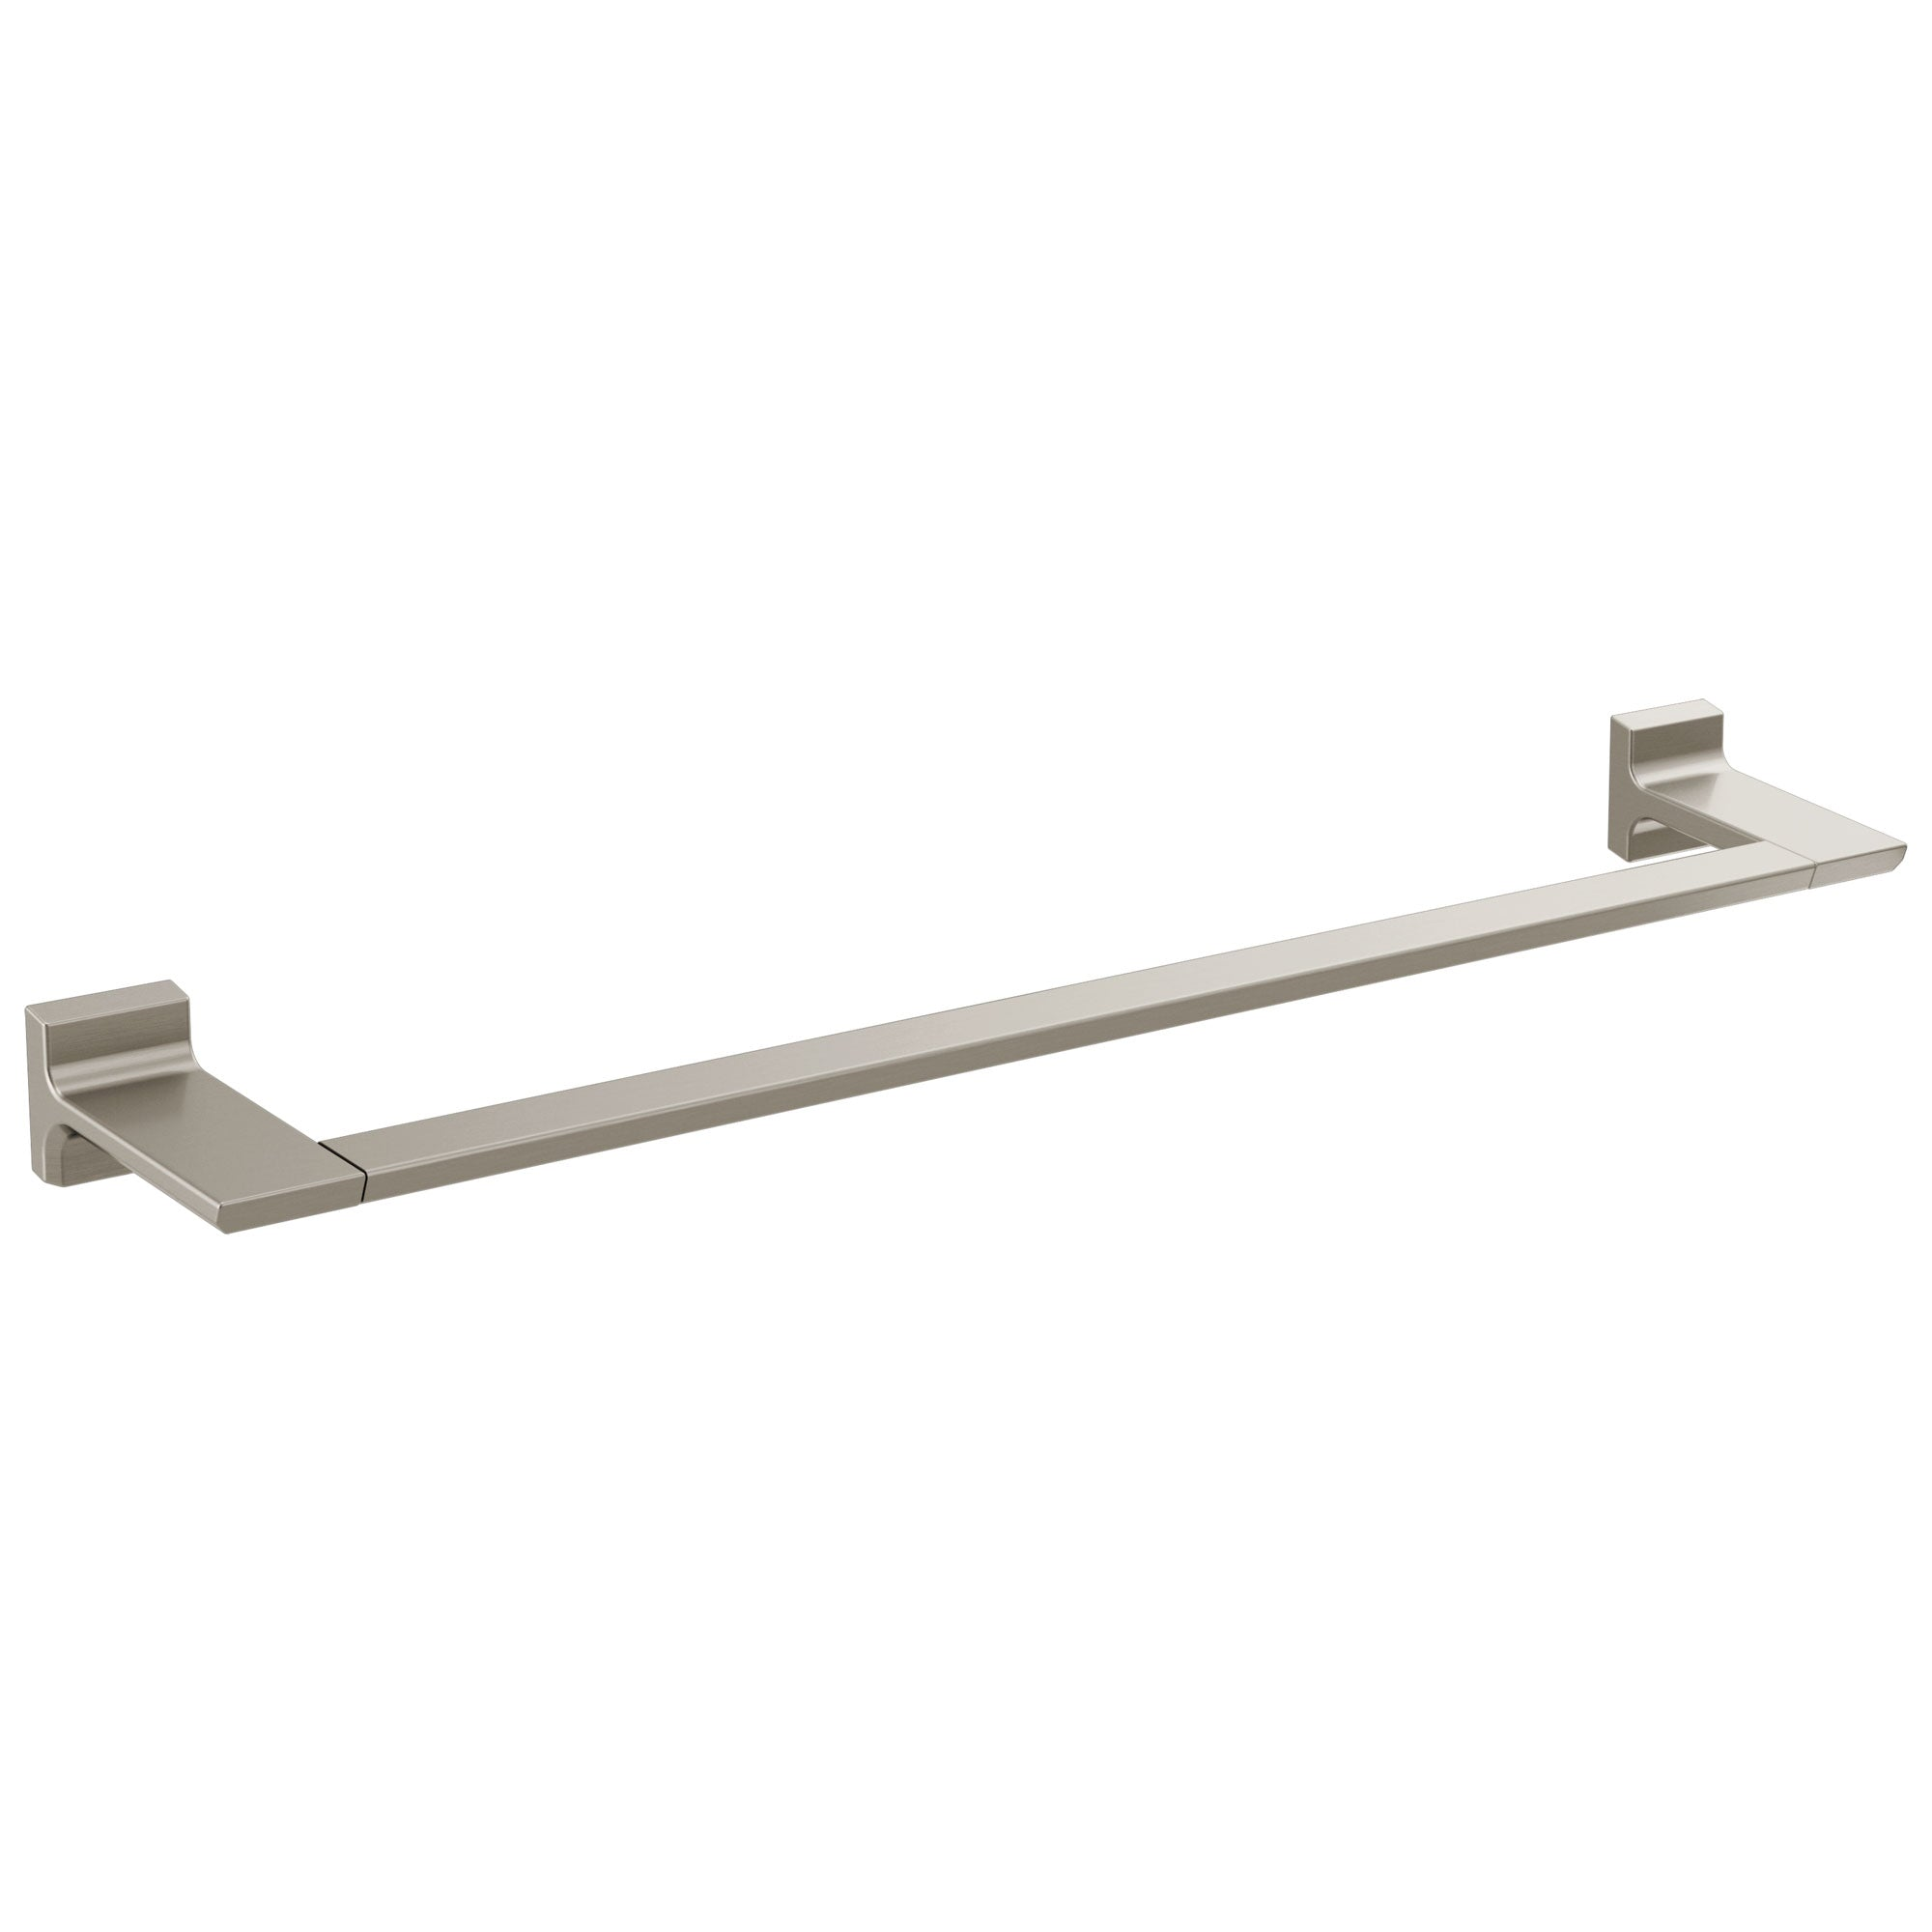 "Delta Pivotal Stainless Steel Finish 24"" Single Towel Bar D79924SS"